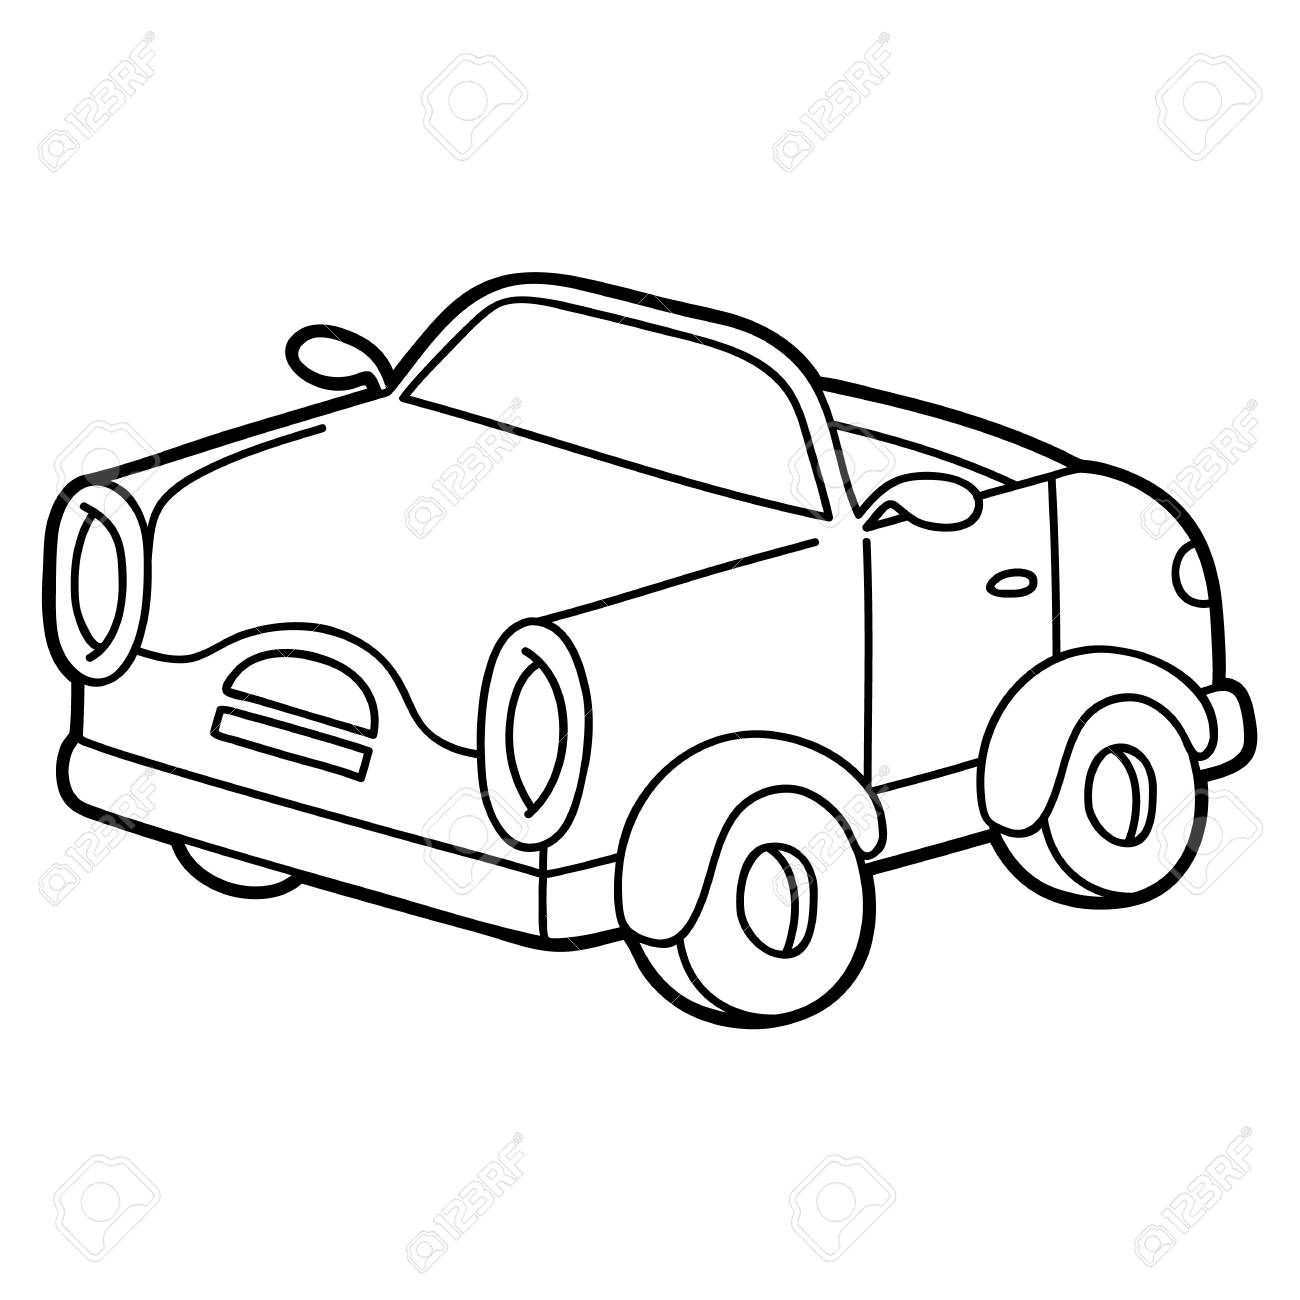 Retro Car For Children Coloring Page